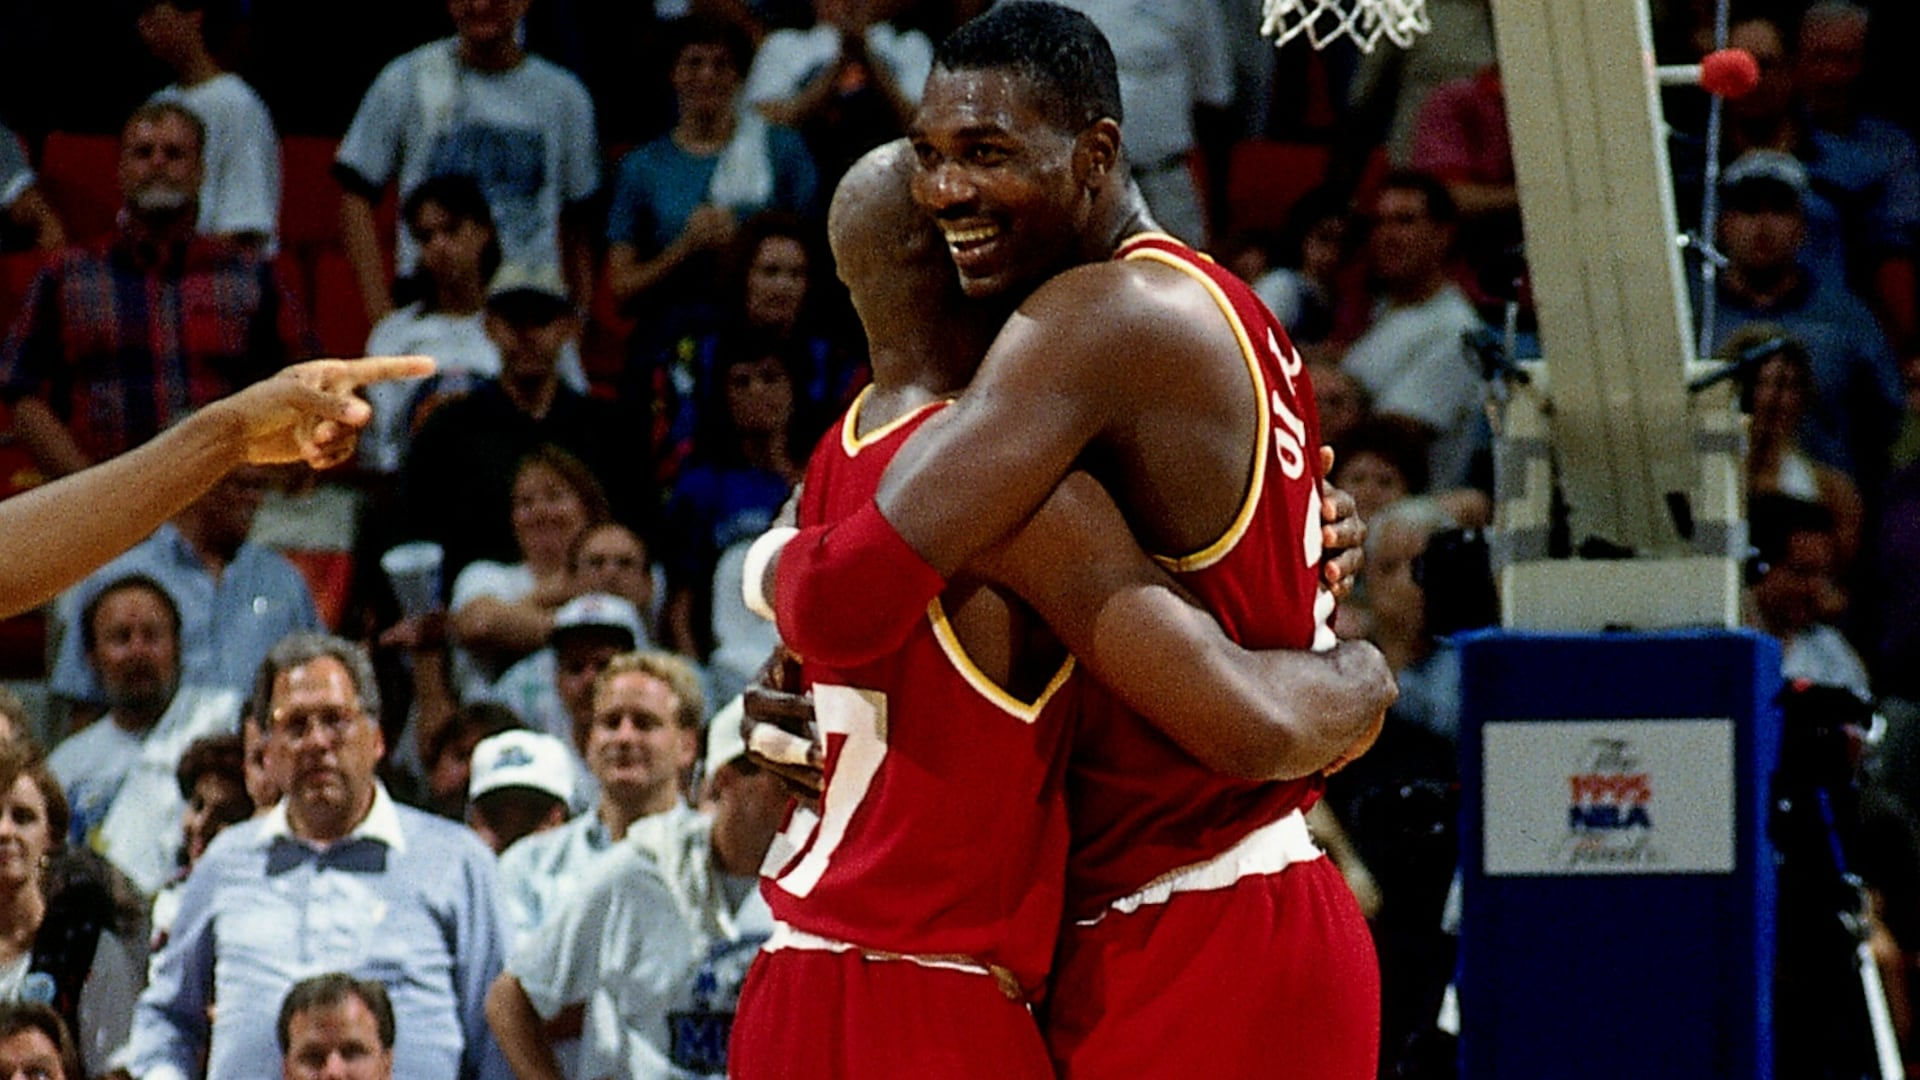 Top NBA Finals moments: Kenny Smith, Hakeem Olajuwon save day in 1995